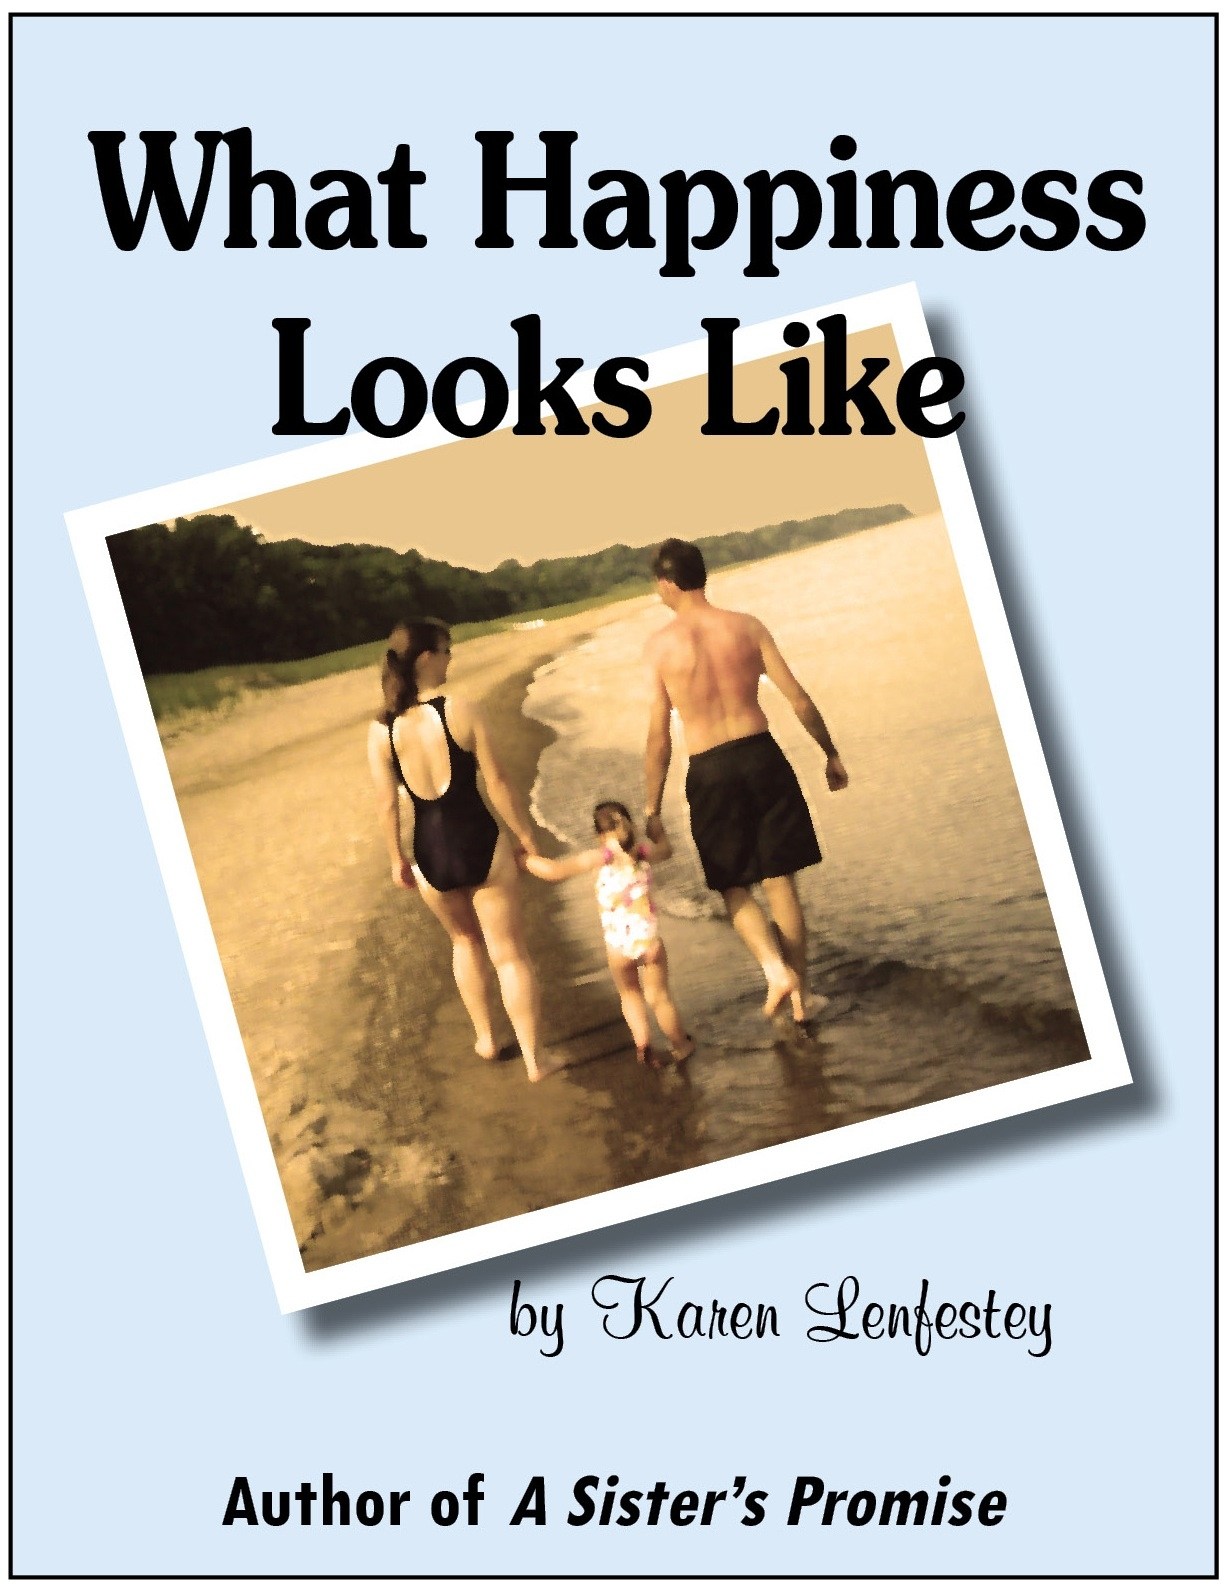 Sneak Peek: What Happiness Looks Like by Karen Lenfestey